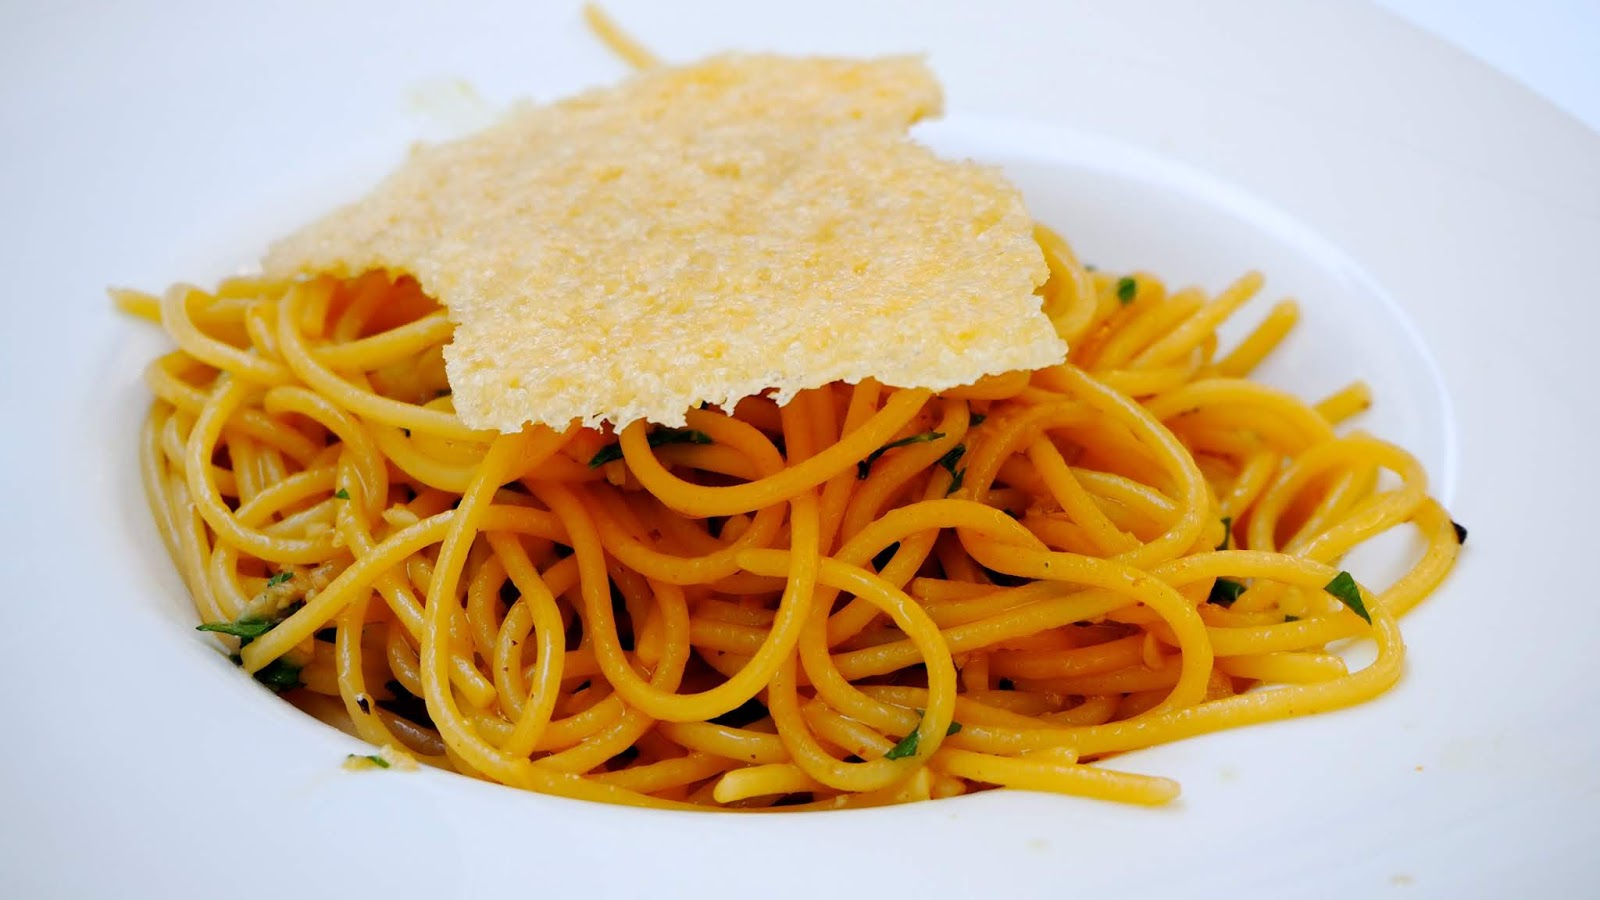 Spaghetti with chilli, garlic and olive oil topped with a parmesan crisp